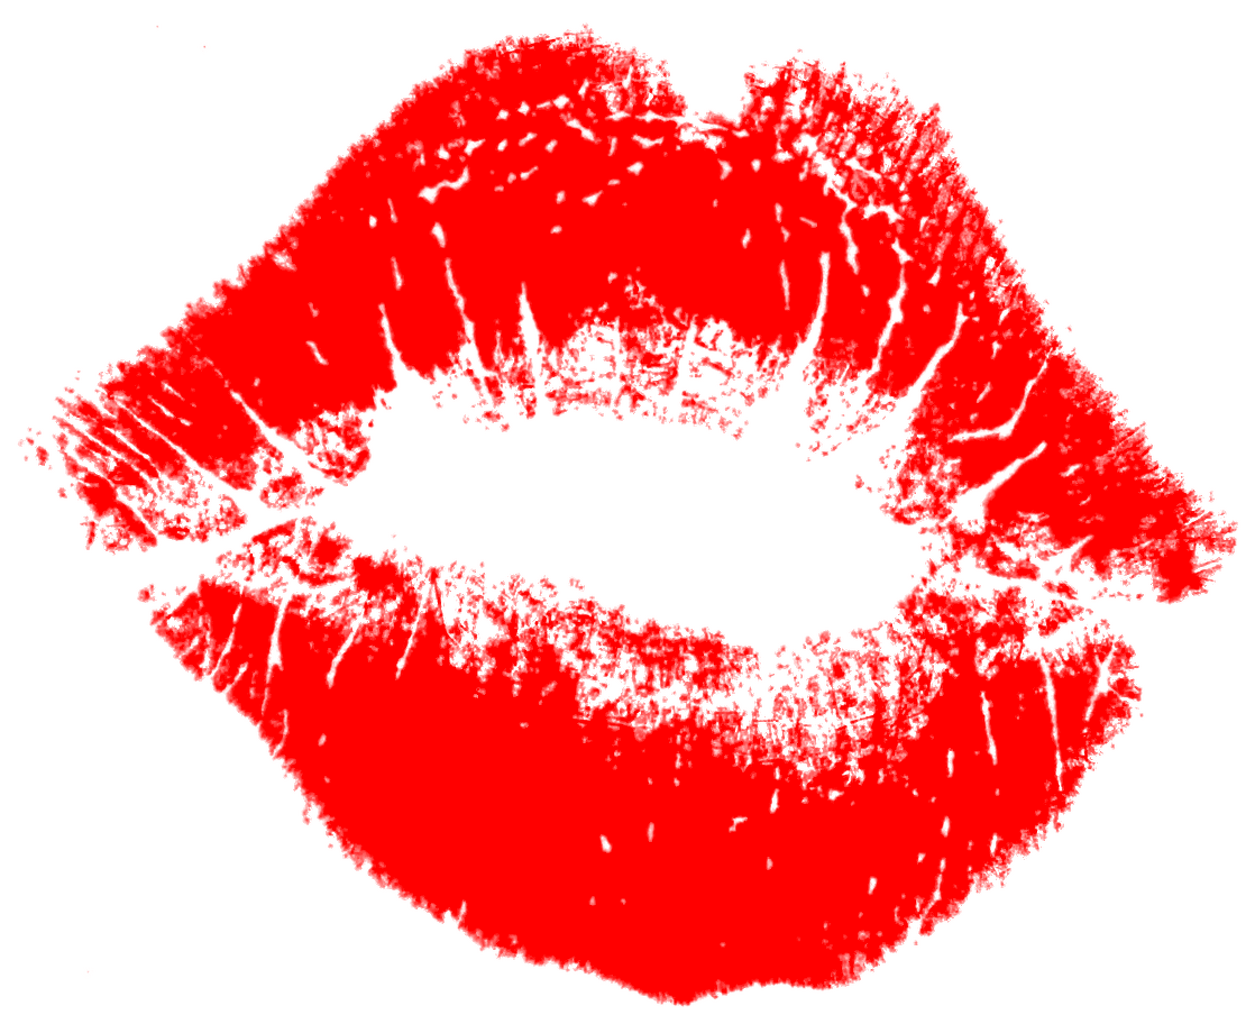 Lip clipart transparent background. Lips png picture web